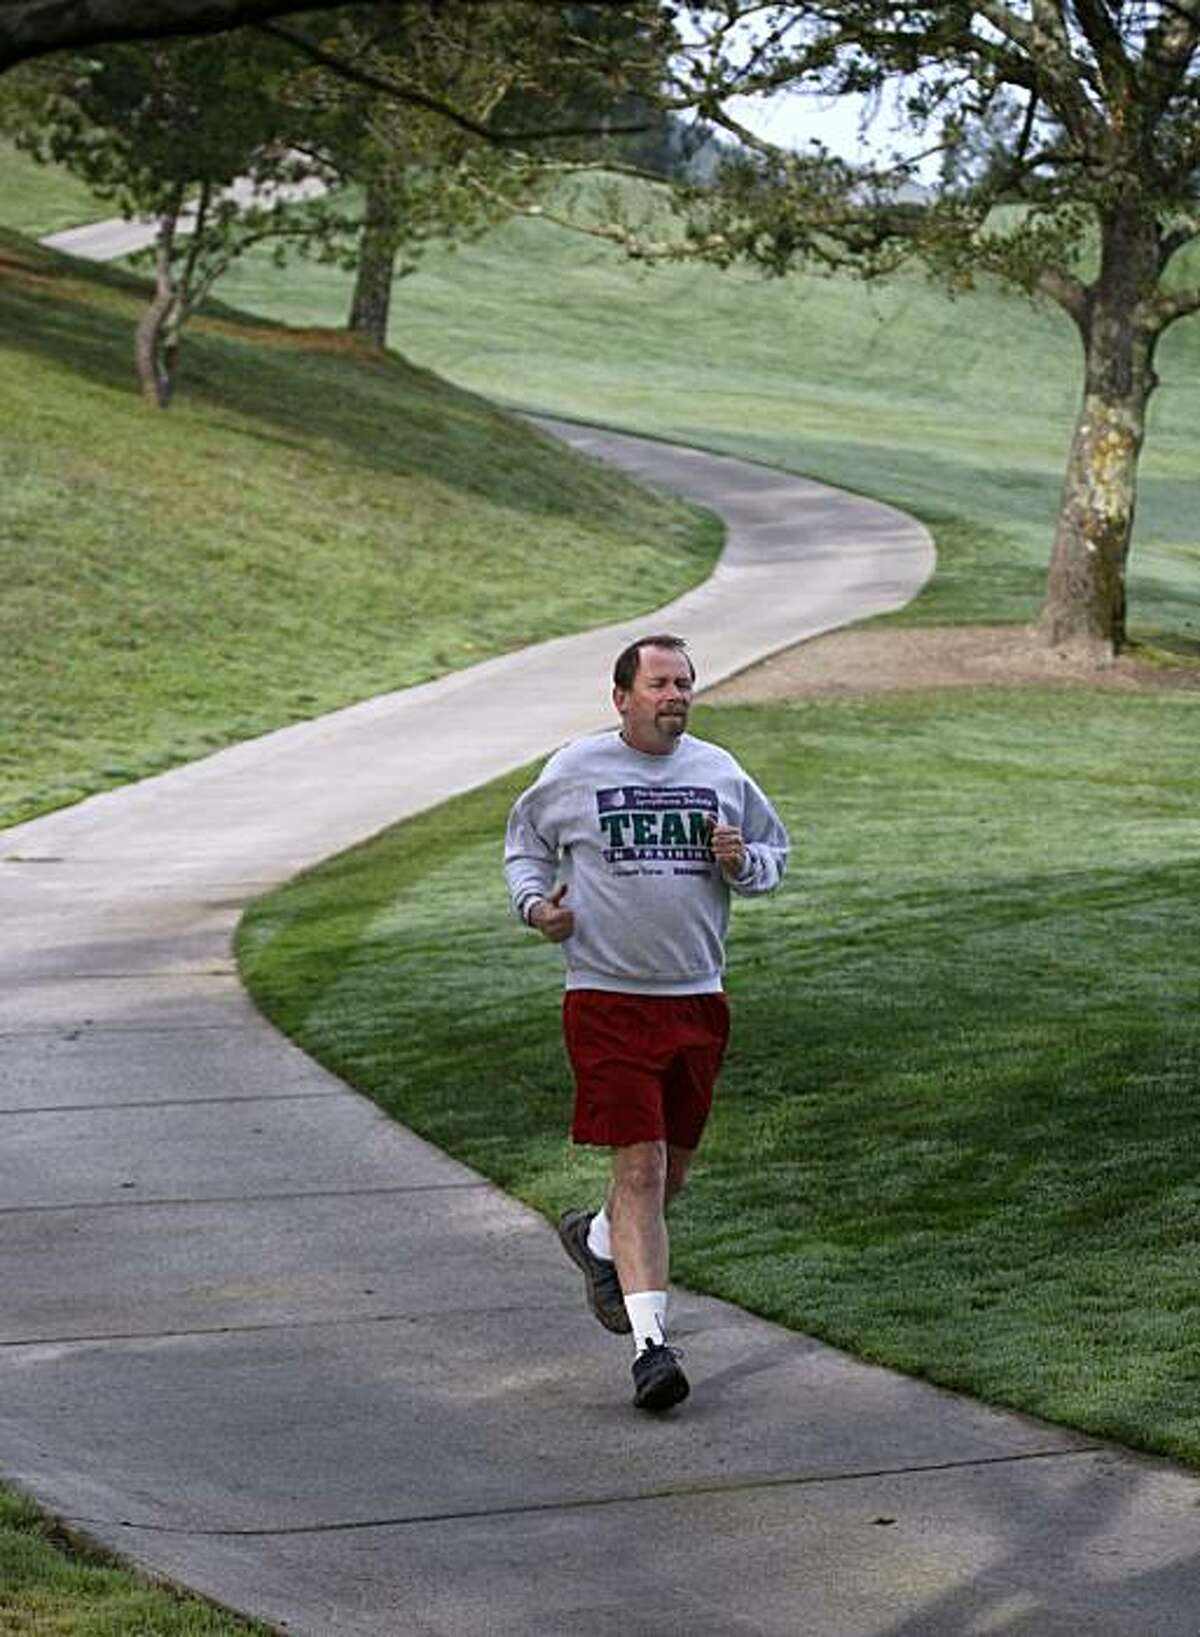 Paul Williams, a scientist at the Lawrence Berkeley National Laboratory, goes for a run near his home in Moraga, Calif., on Friday, Jan. 15, 2010. Williams has spent the past 20 years studying the science of running, using over 100,000 runners participating in his research.